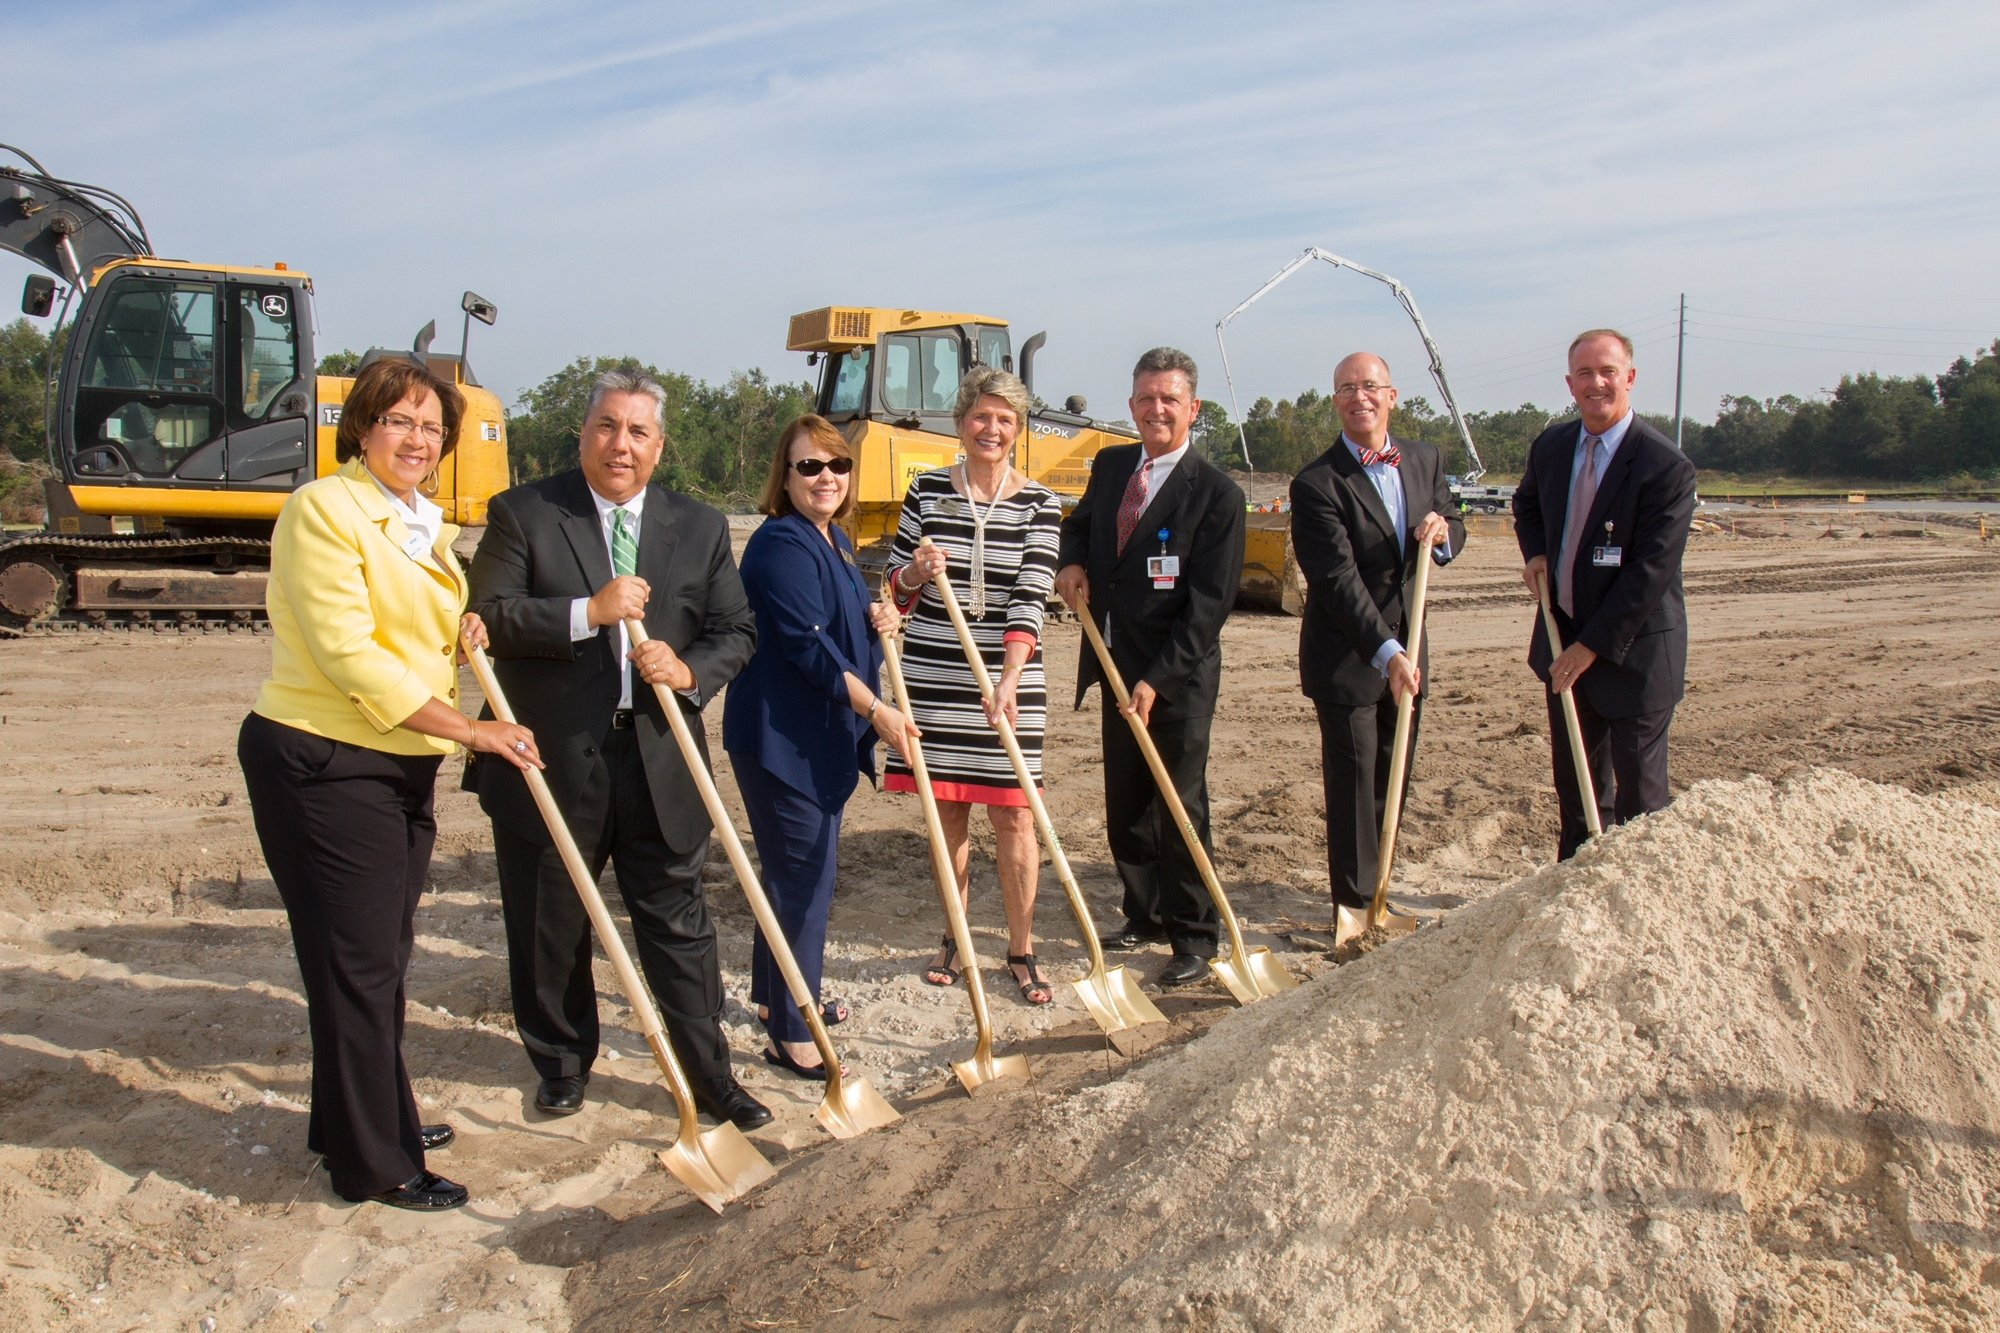 Skilled Nursing and Hospice Care Coming to West Orange